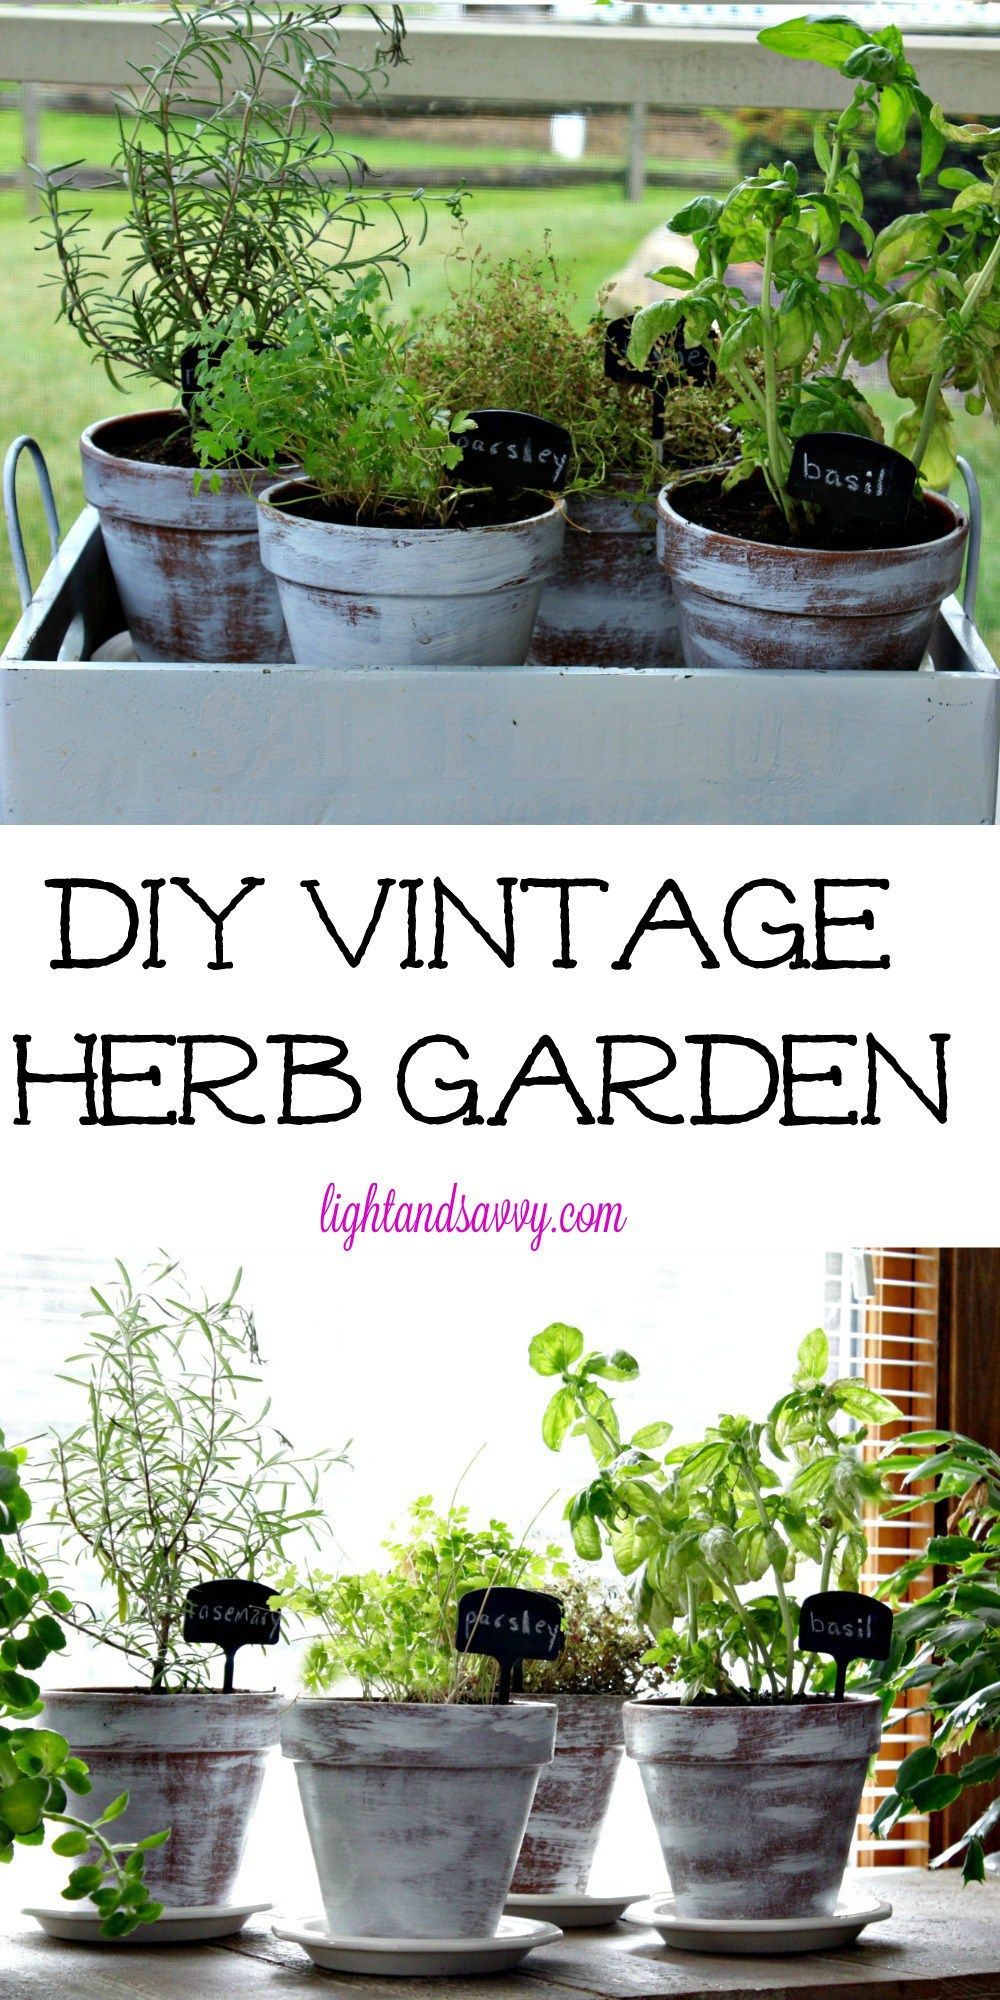 DIY Vintage Herb Garden - Always have fresh herbs on hand - Make your grocery store herb plants last by re-potting them into a vintage looking planter that you can easily make yourself in minutes!